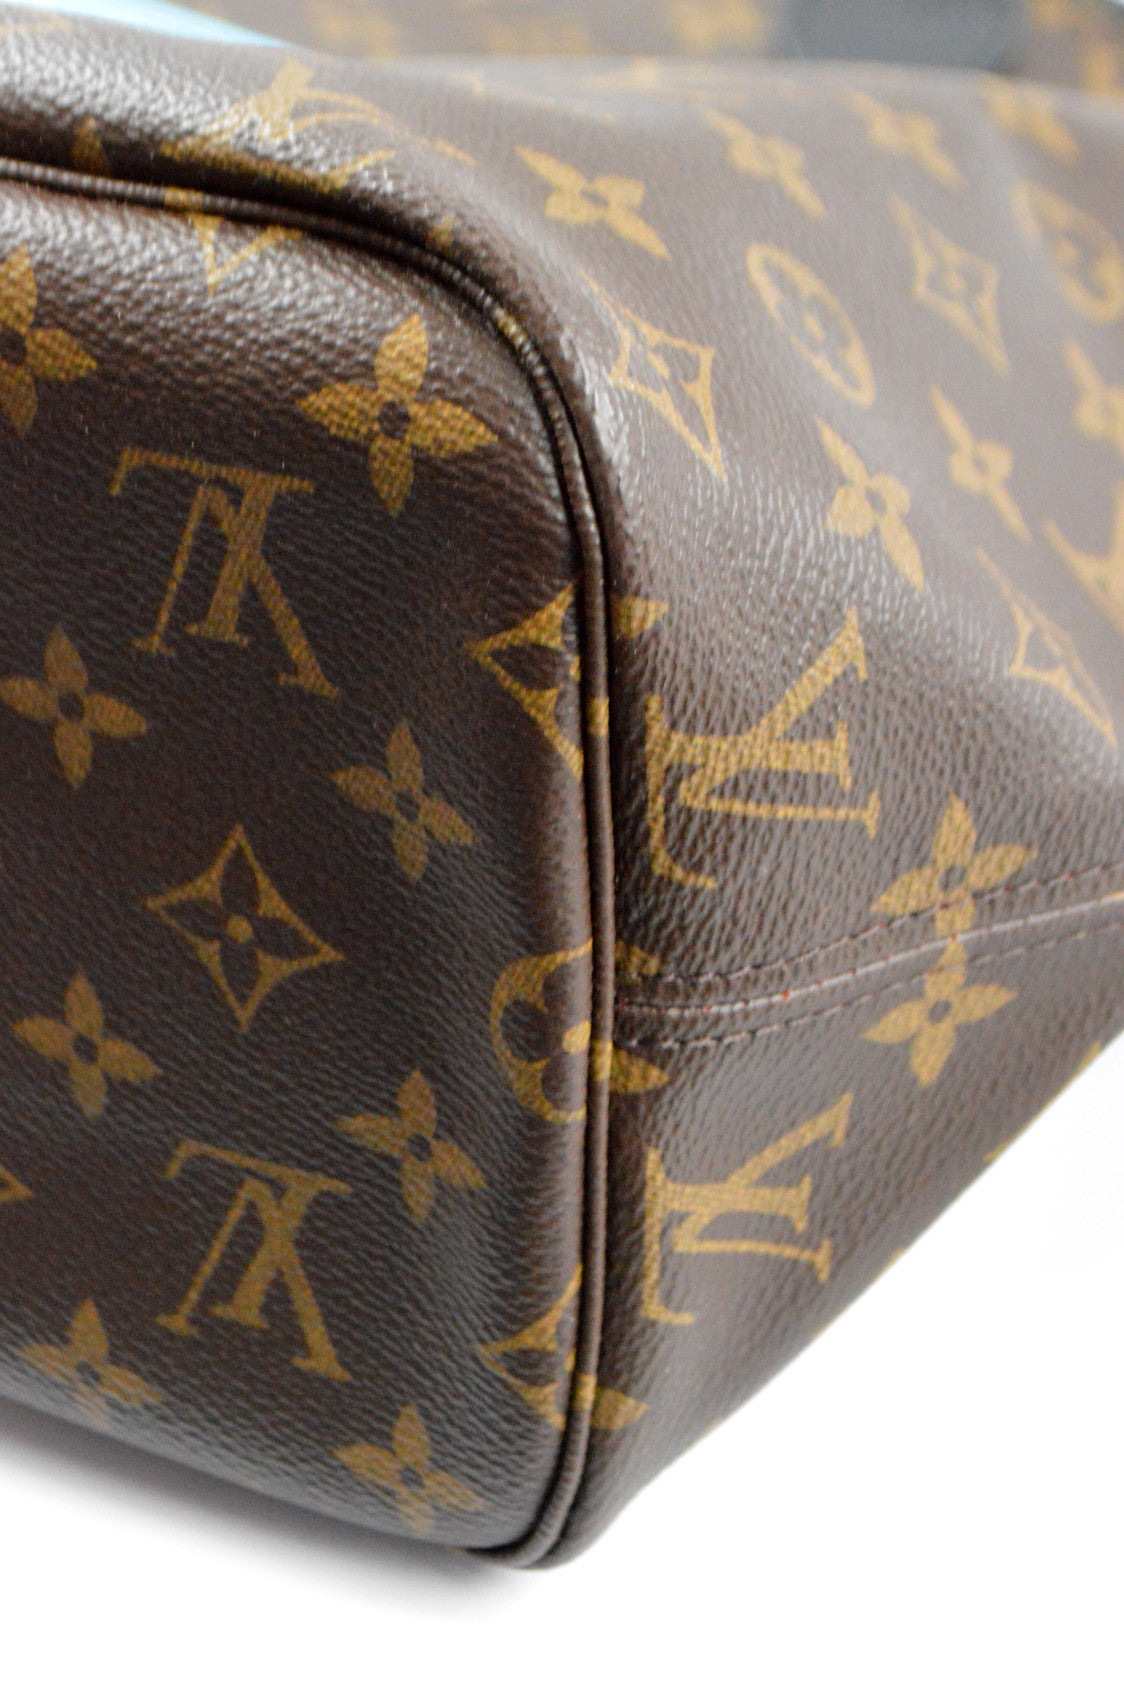 Limited Edition Monogram World Tour Neverfull MM -  ON LAYAWAY